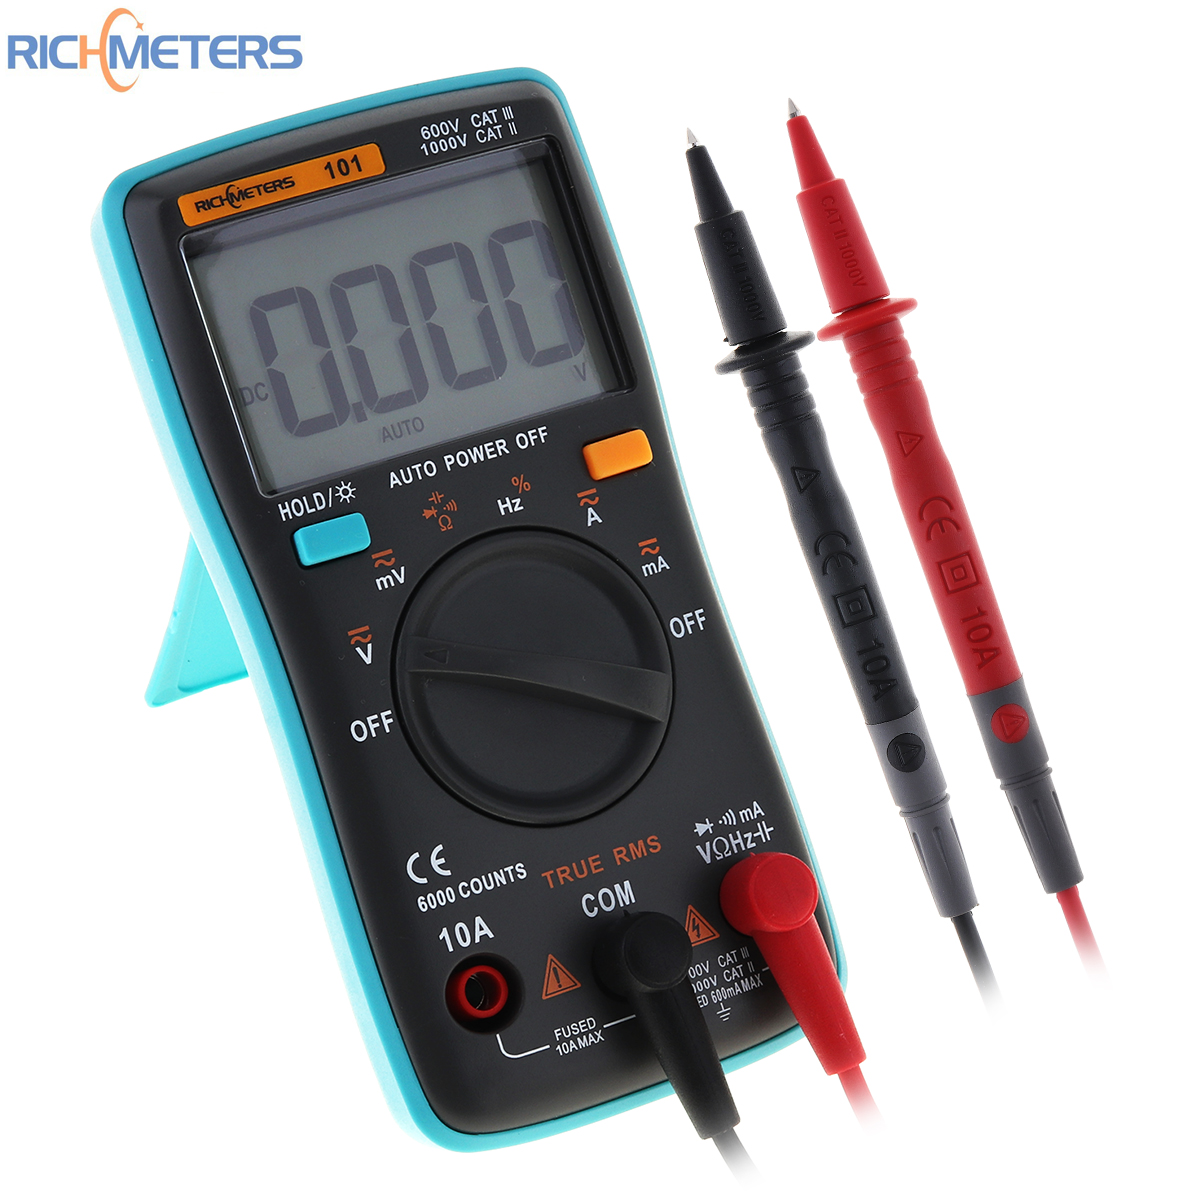 RICHMETERS RM101 Digital Multimeter 6000 Counts AC / DC Ammeter Voltmeter Ohm Portable Meter with Backlight